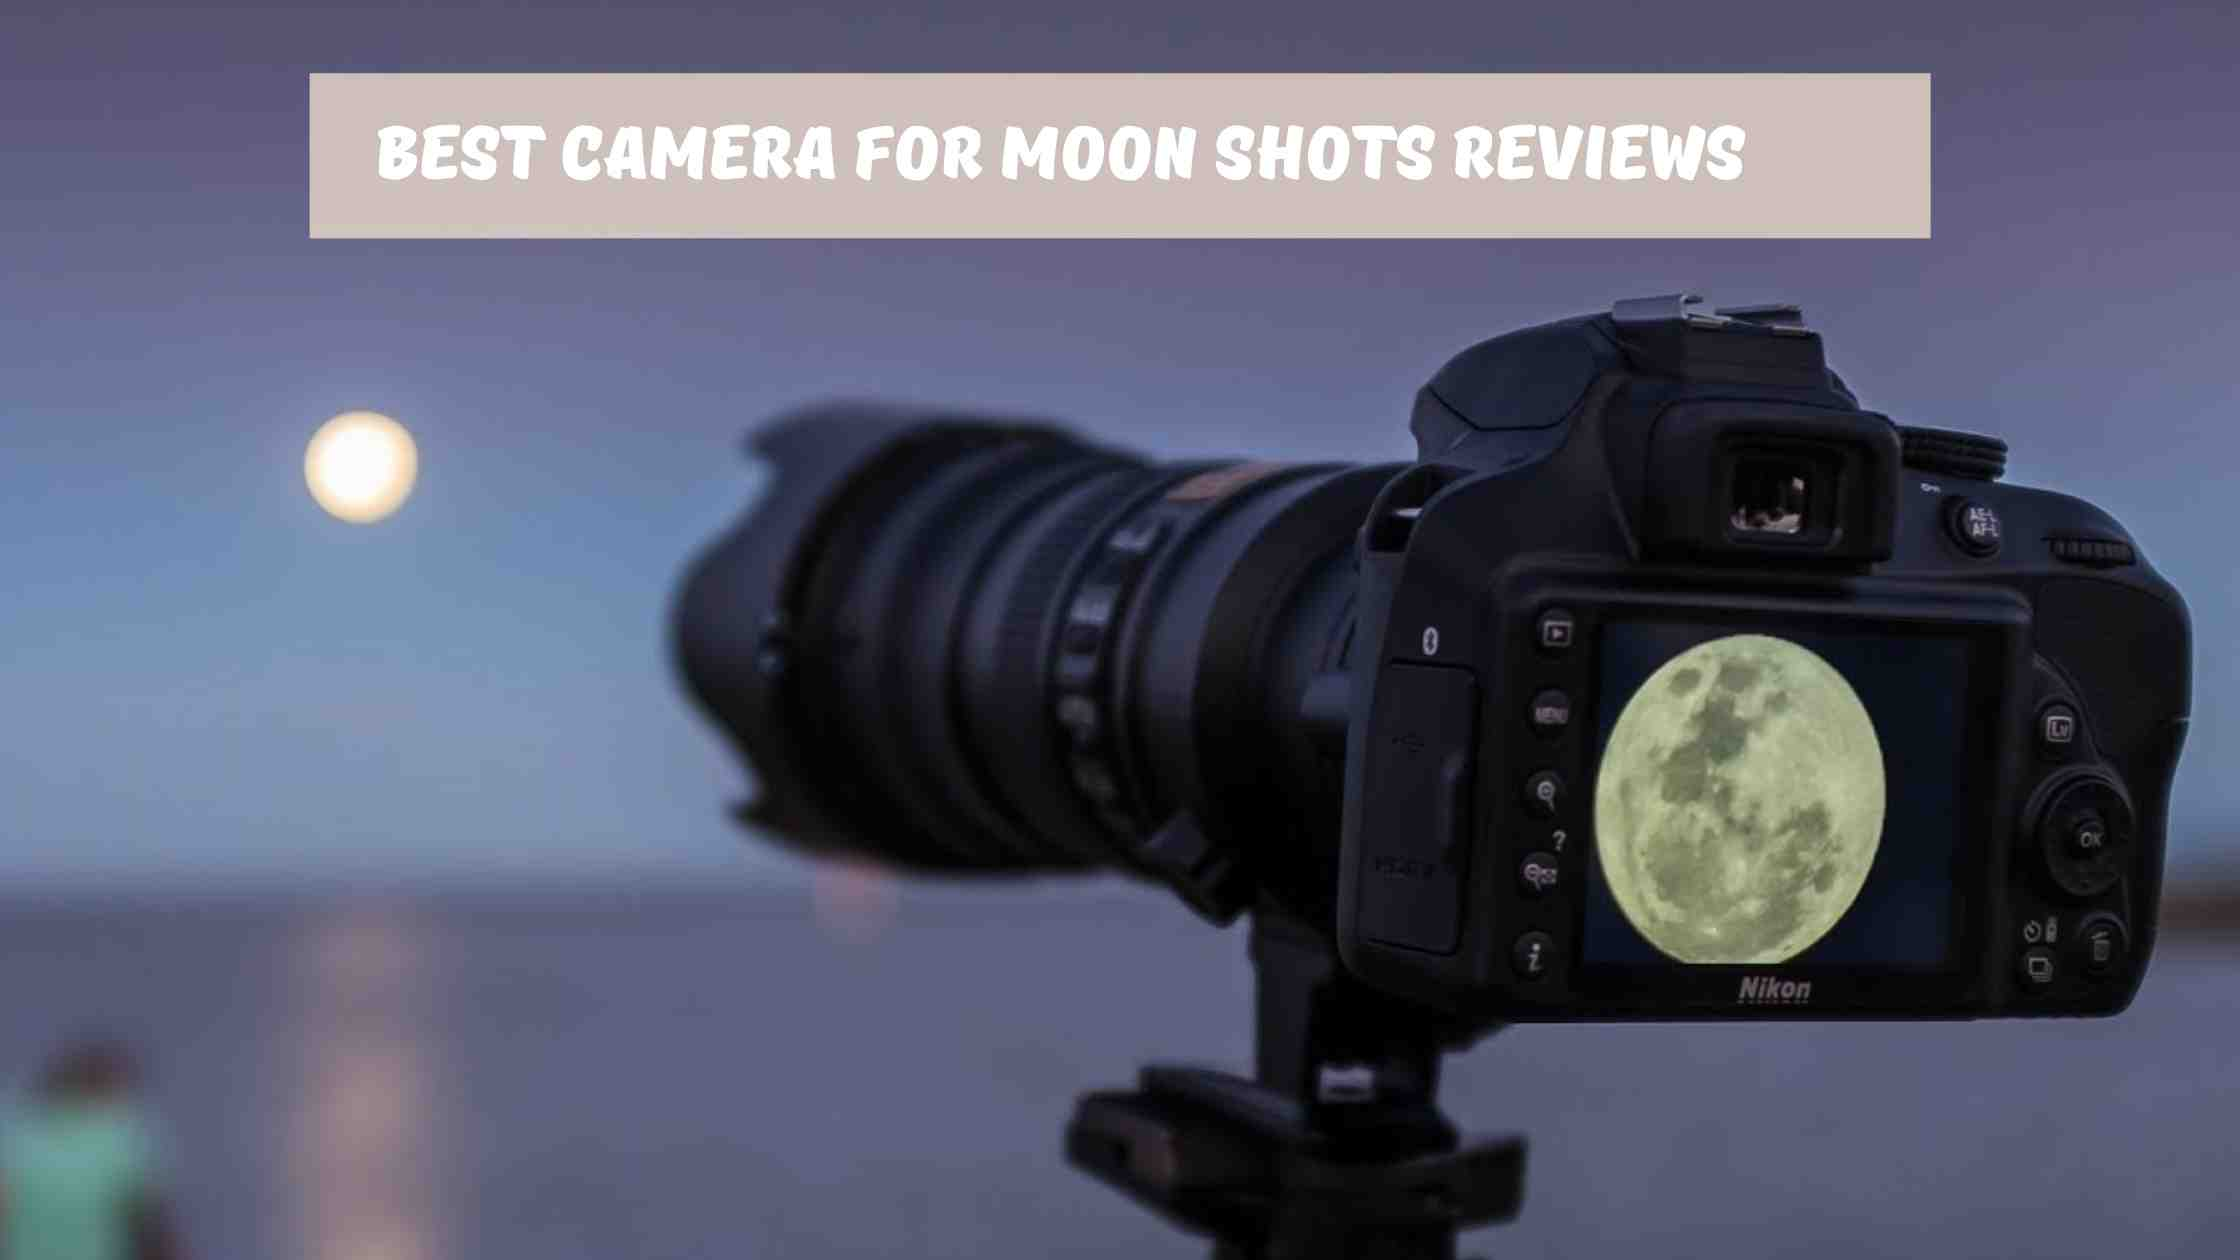 Best Camera for Moon Shots Reviews